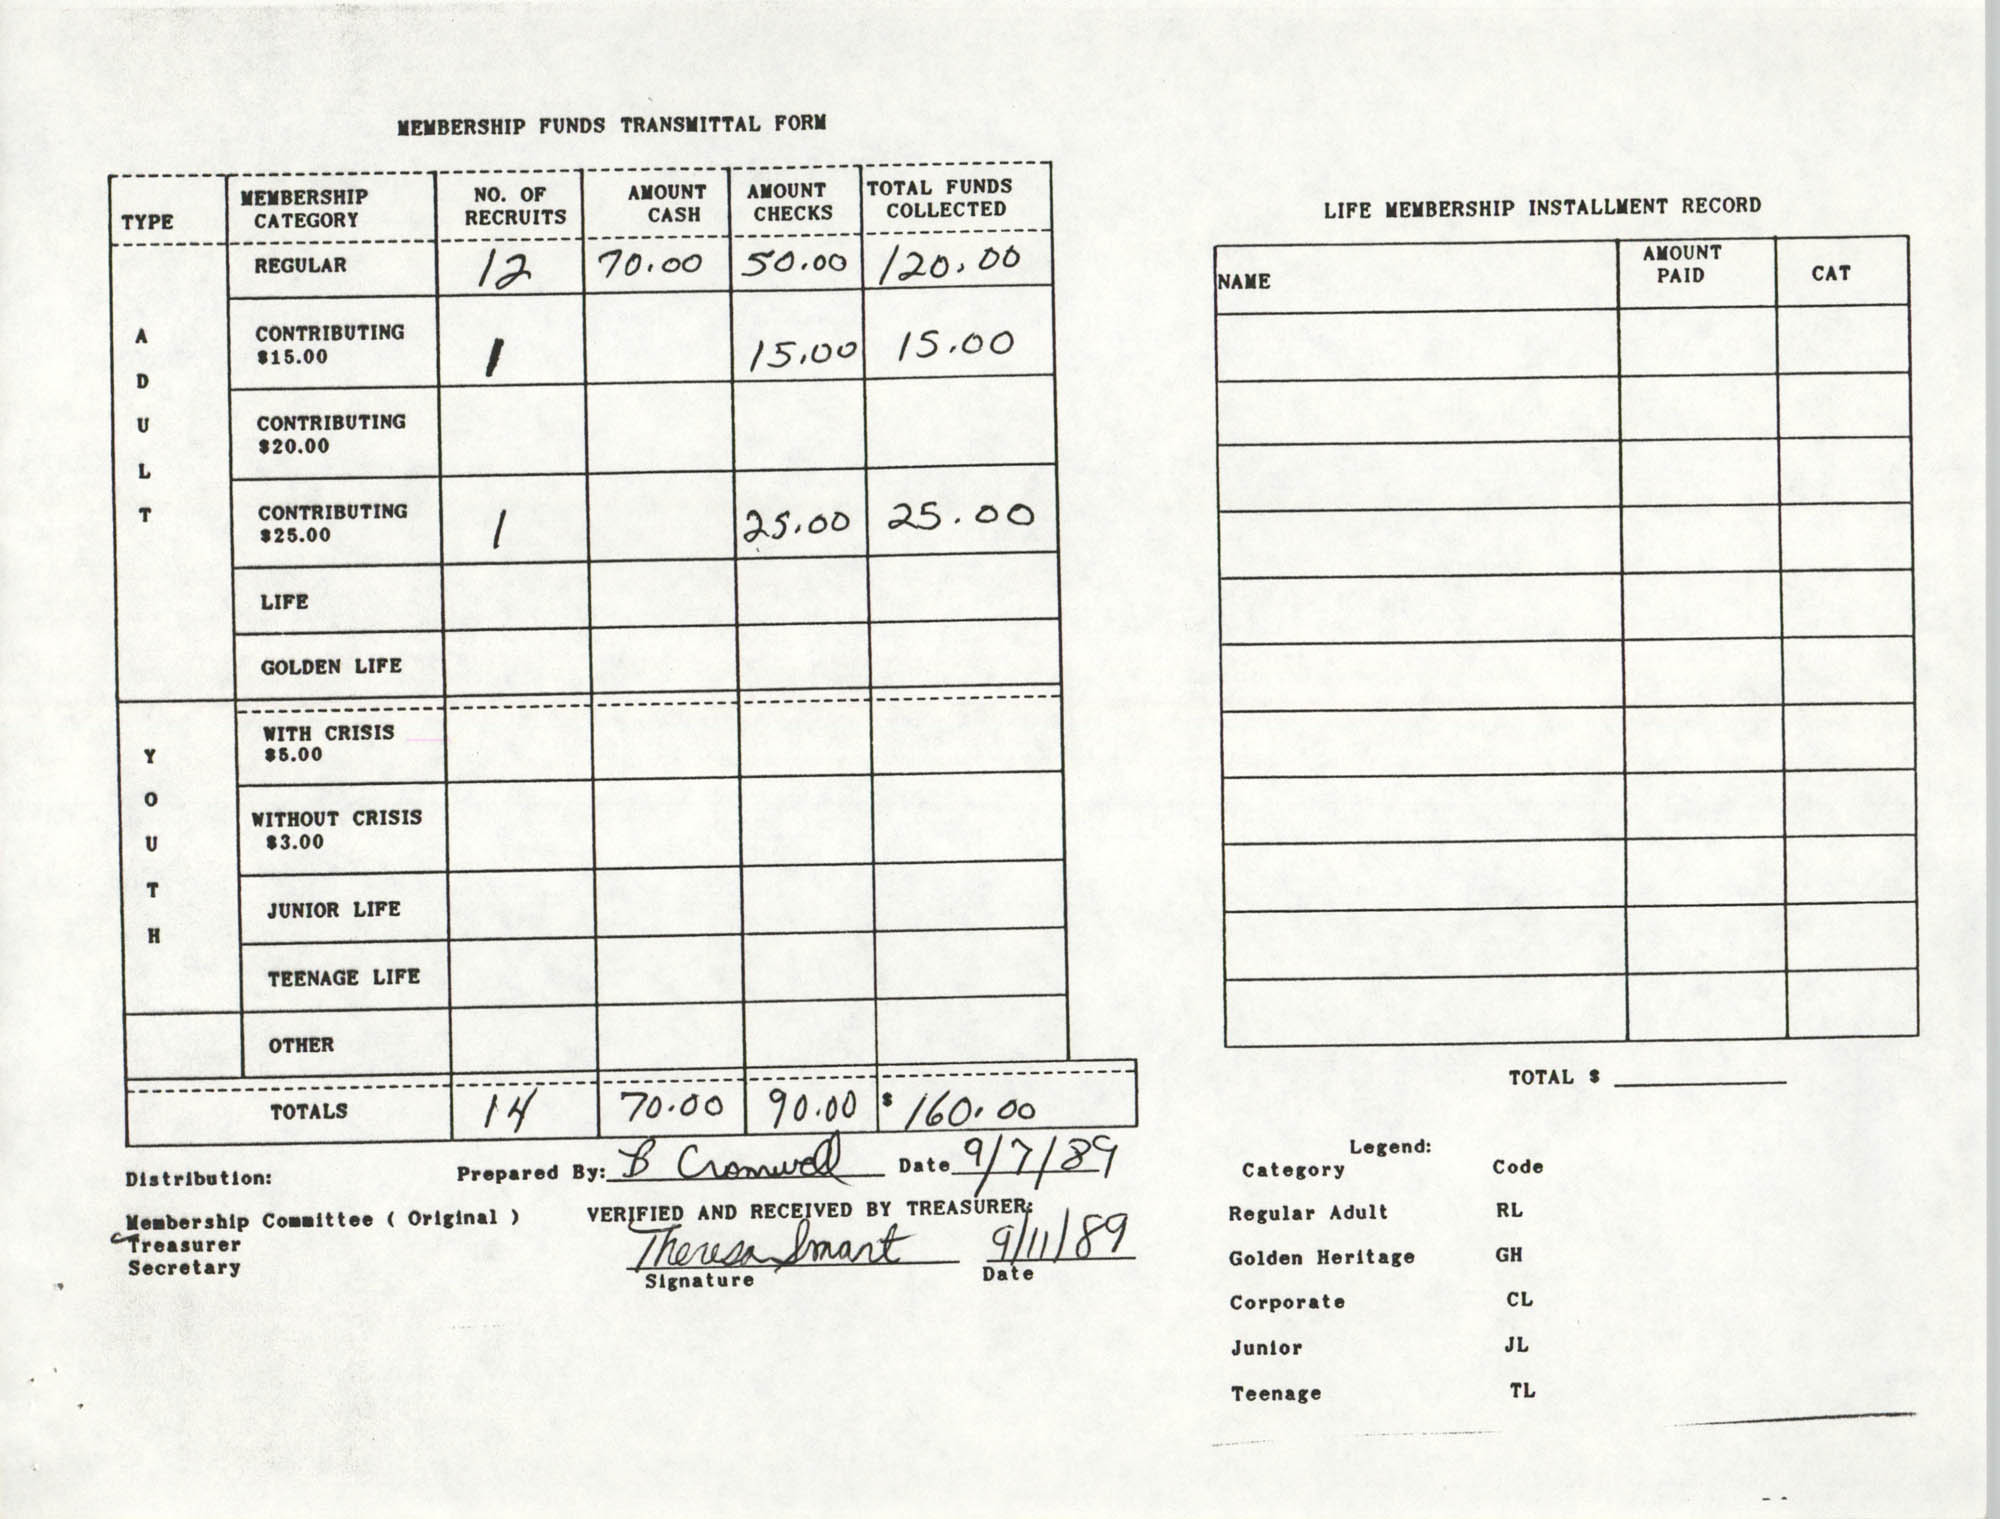 Charleston Branch of the NAACP Funds Transmittal Forms, September 1989, Page 3